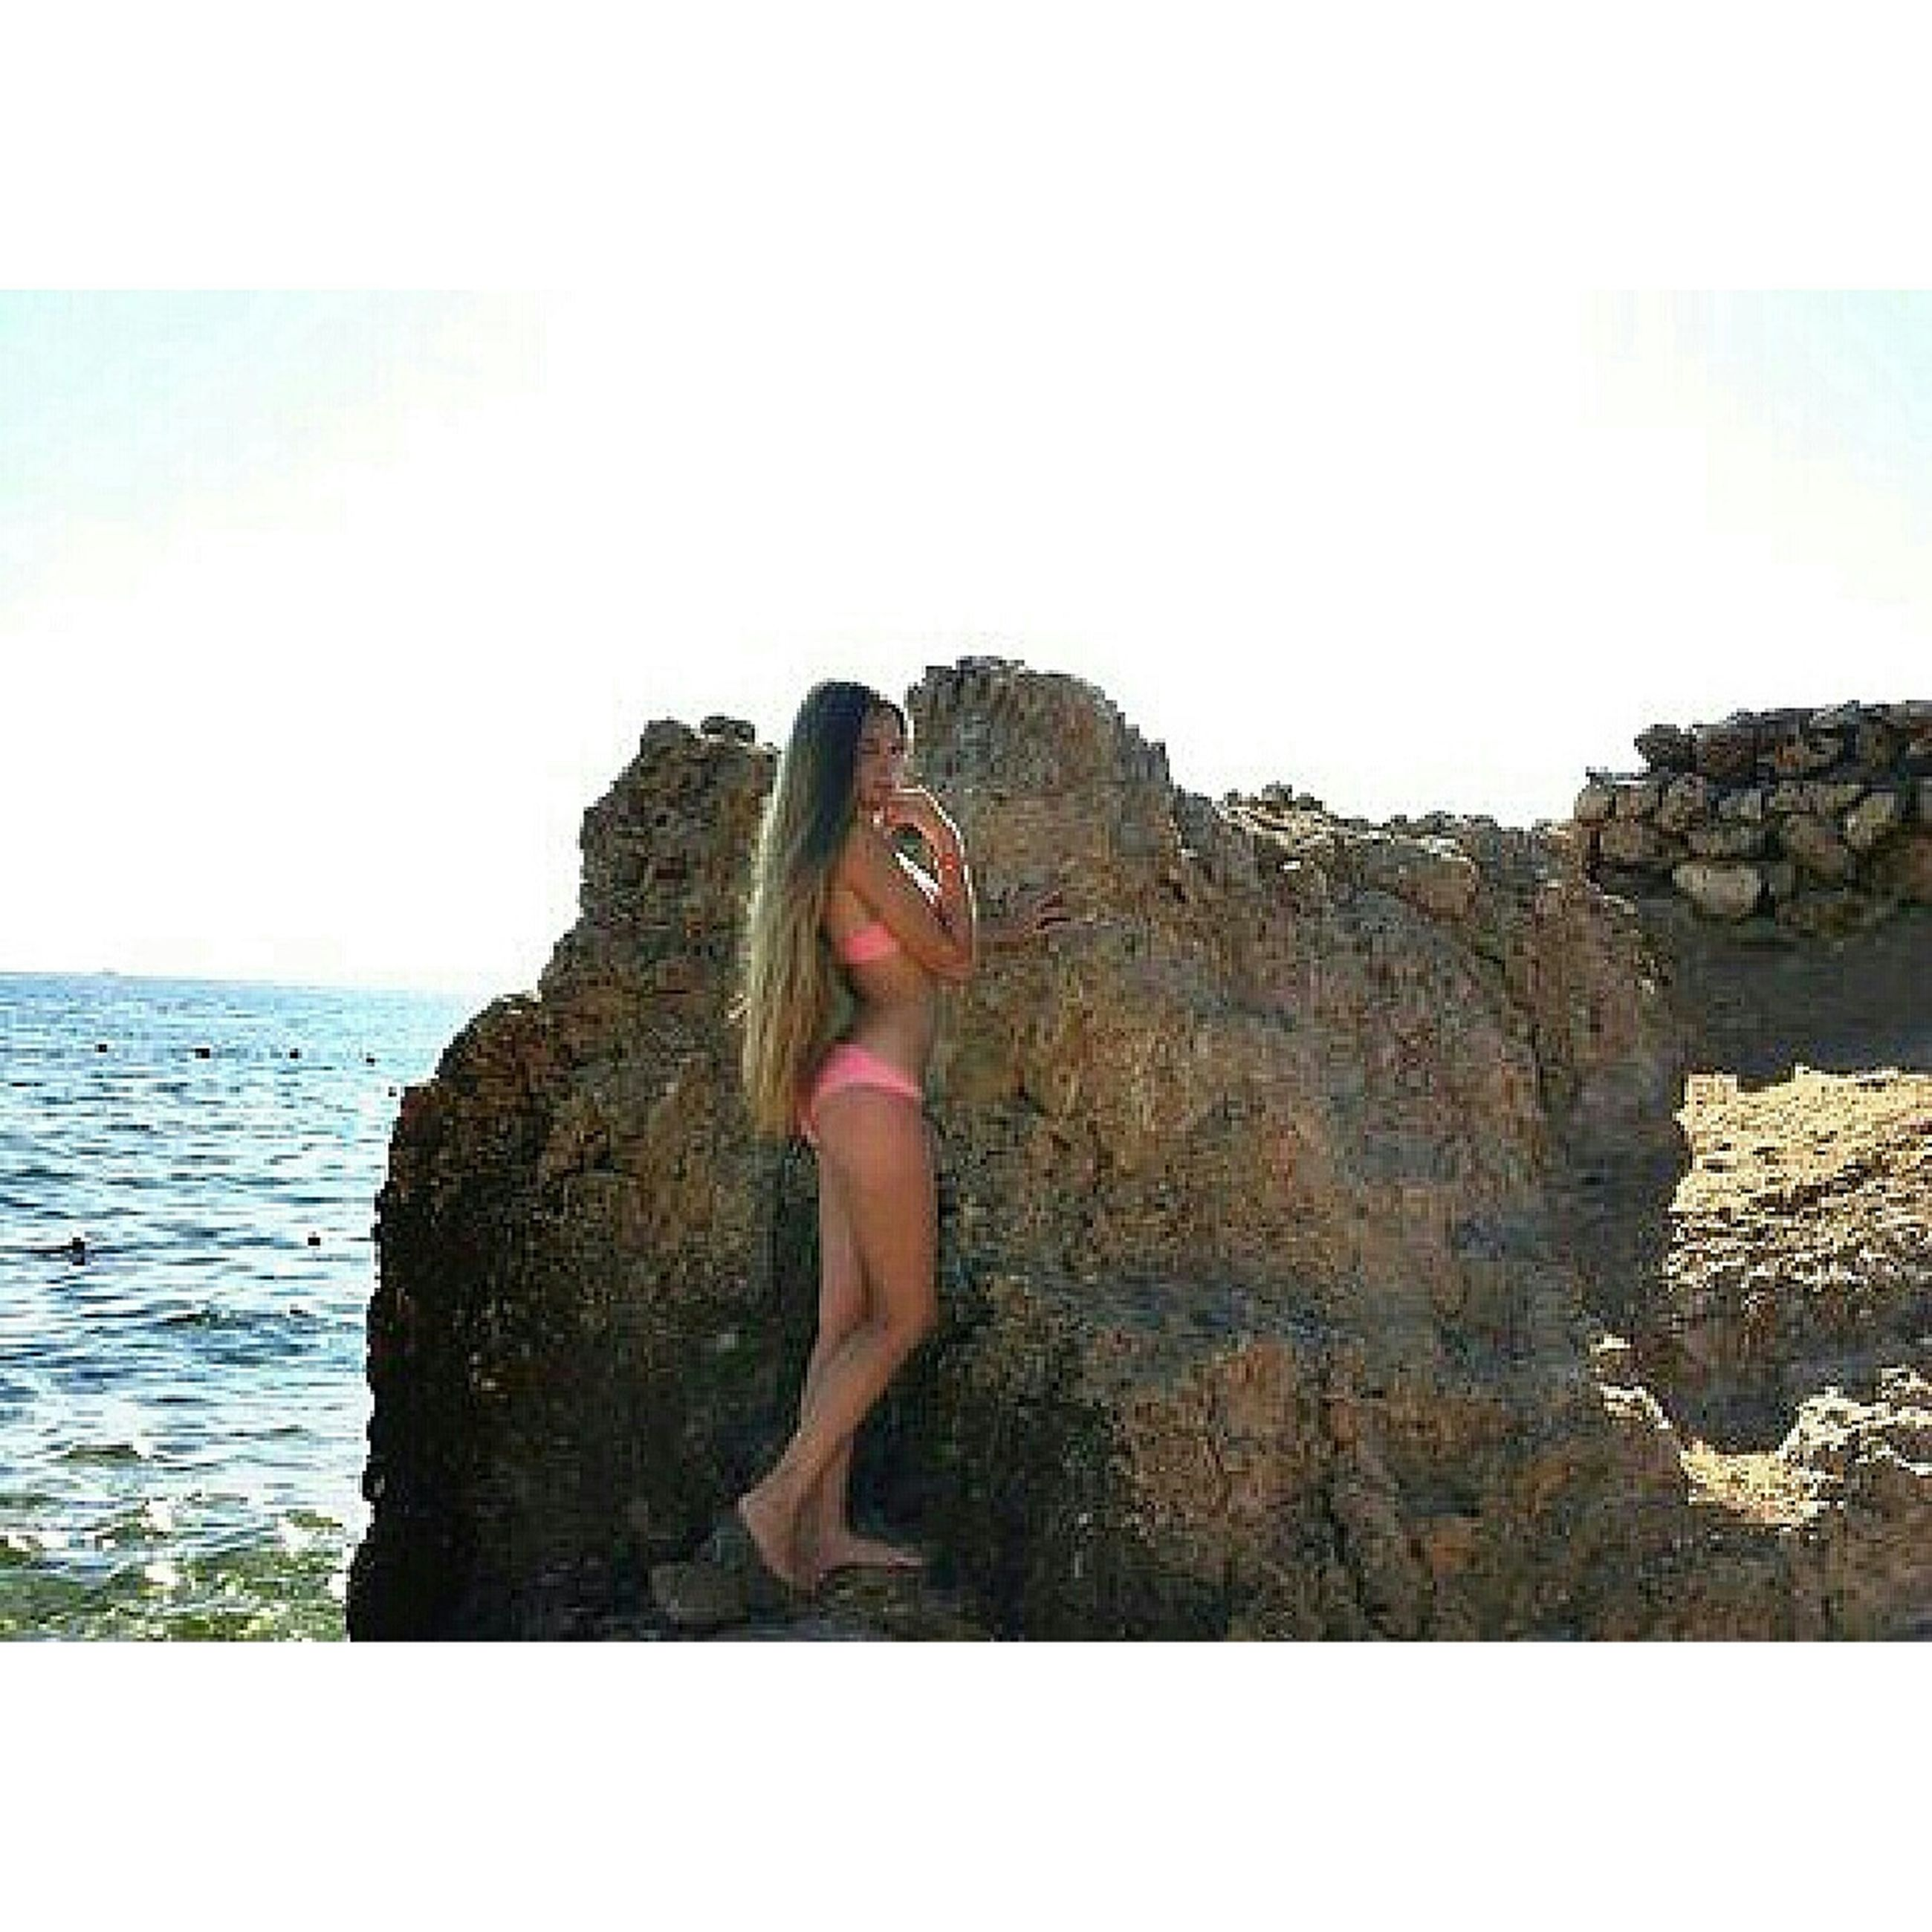 water, sea, lifestyles, leisure activity, rock - object, horizon over water, tranquility, scenics, beauty in nature, nature, tranquil scene, person, vacations, rock formation, young adult, standing, rock, sitting